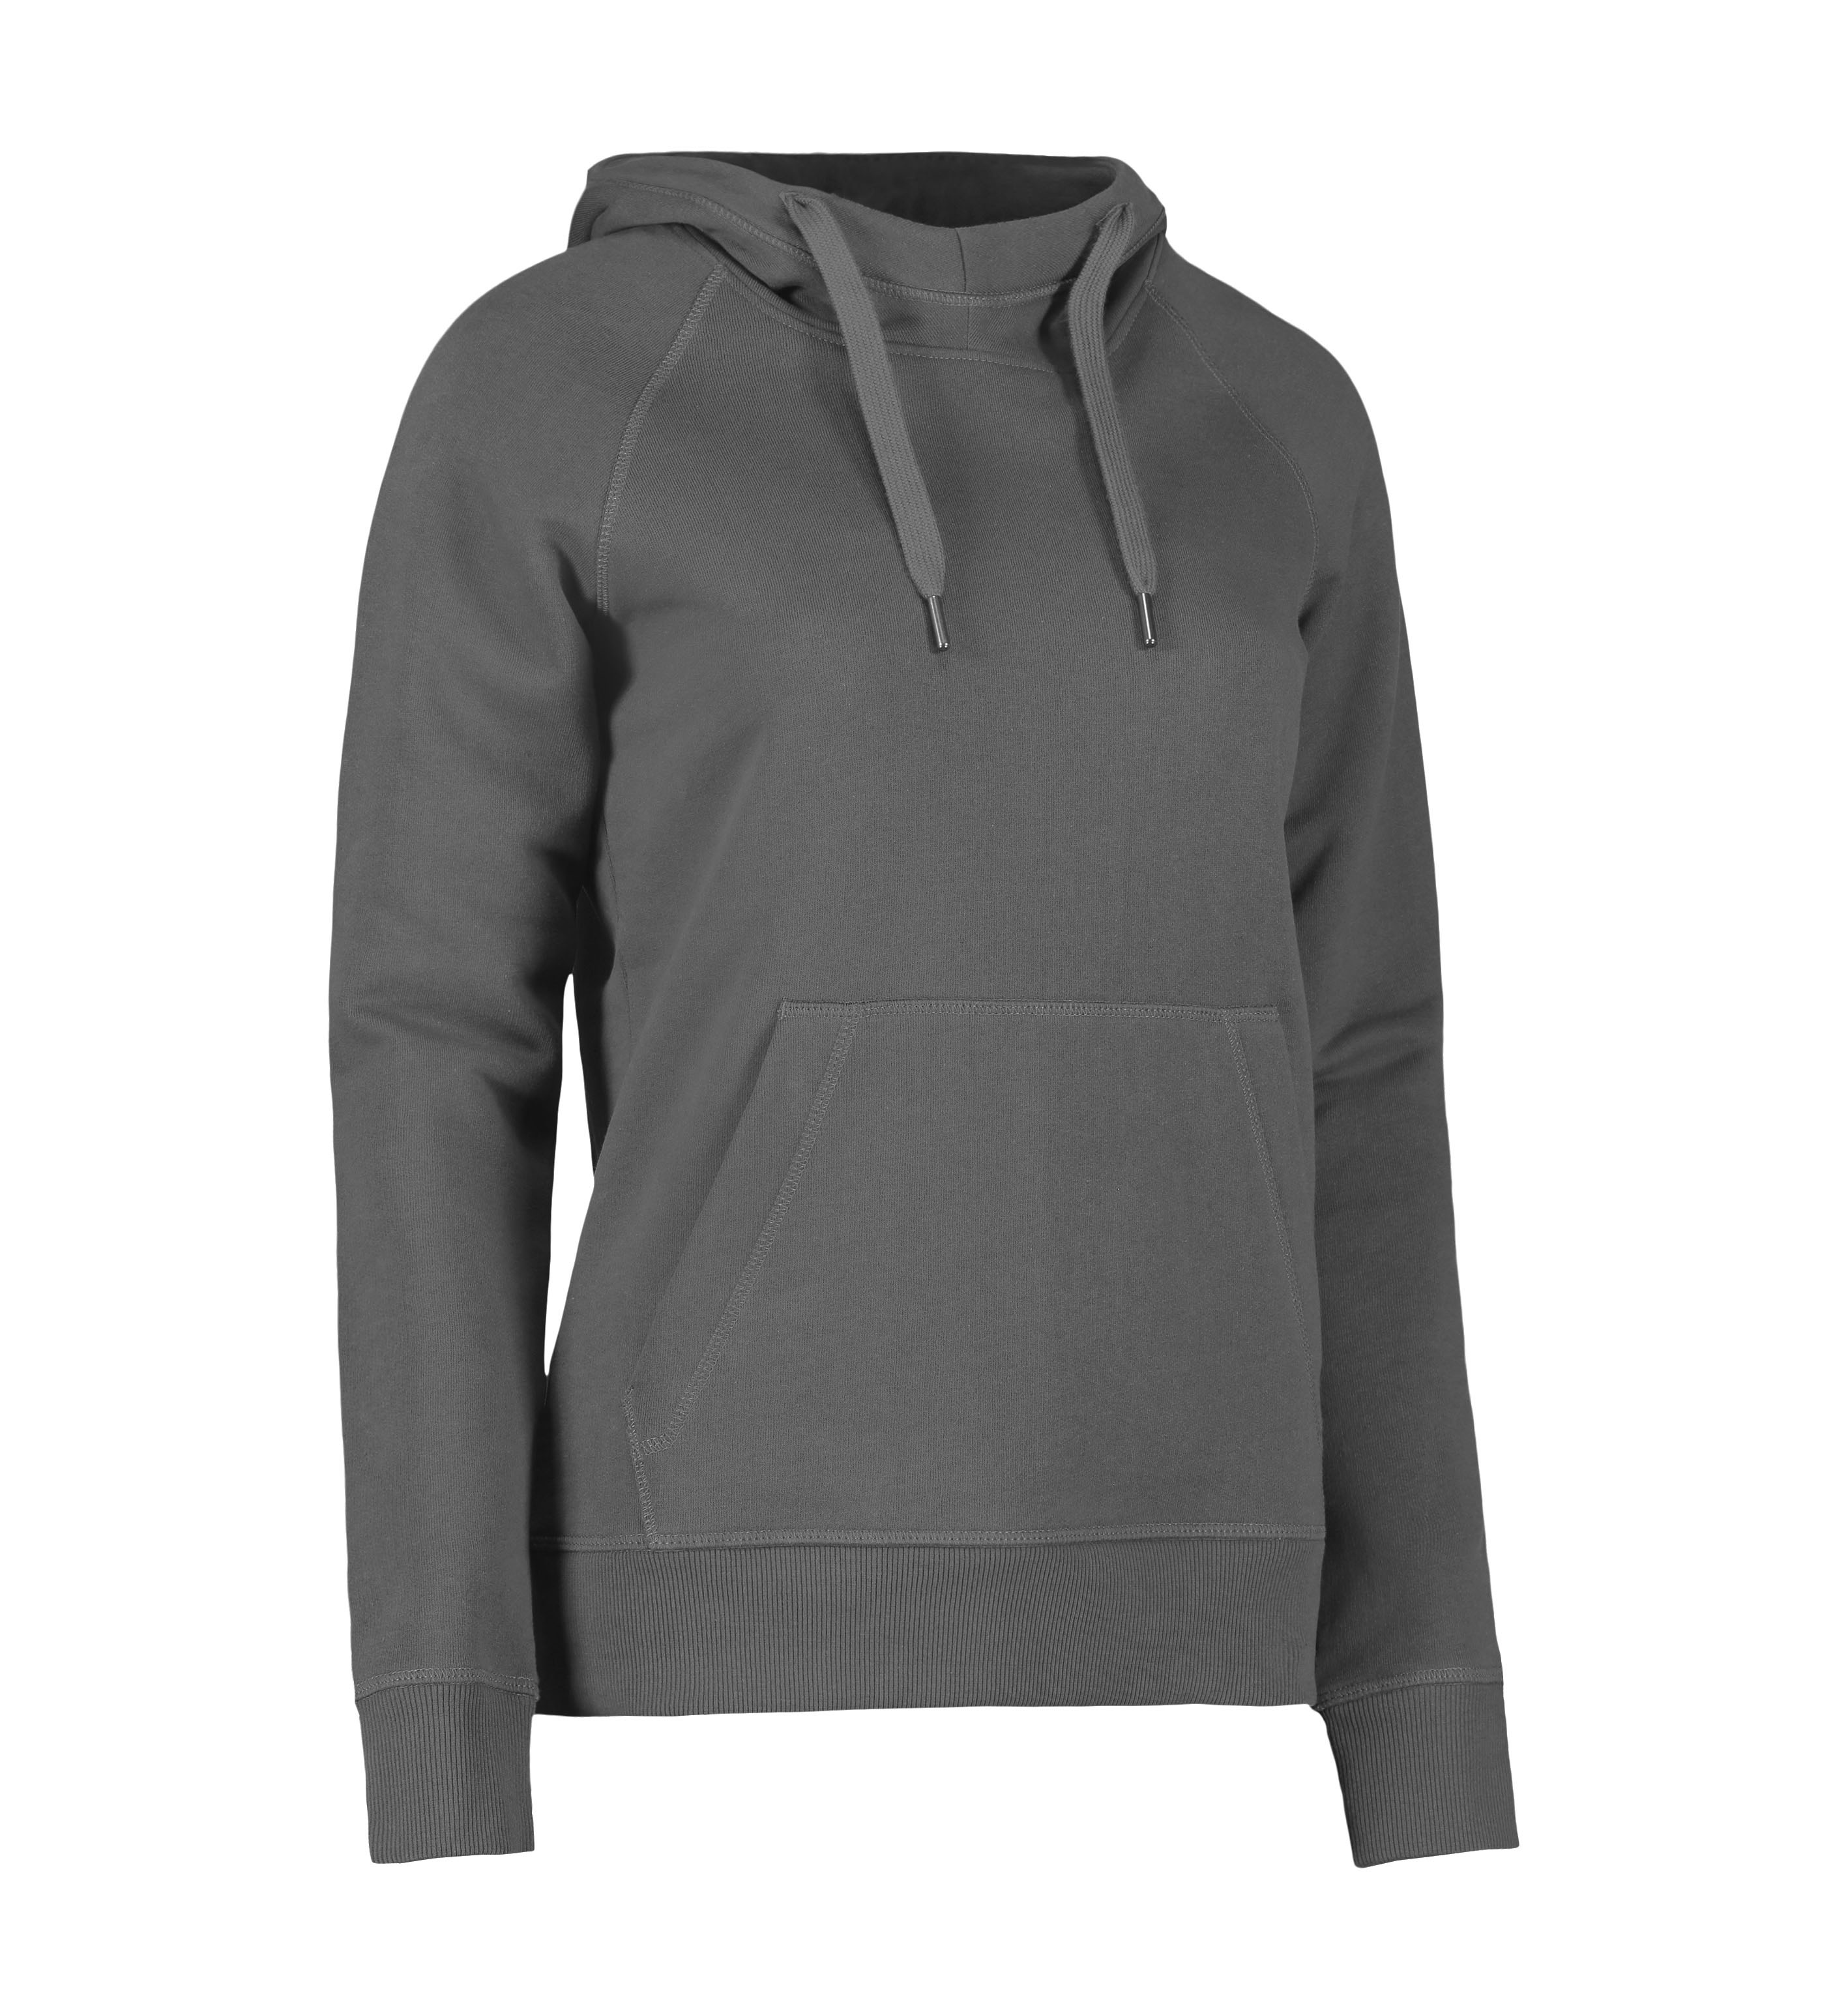 0637 CORE hoodie | dame i Silver grey